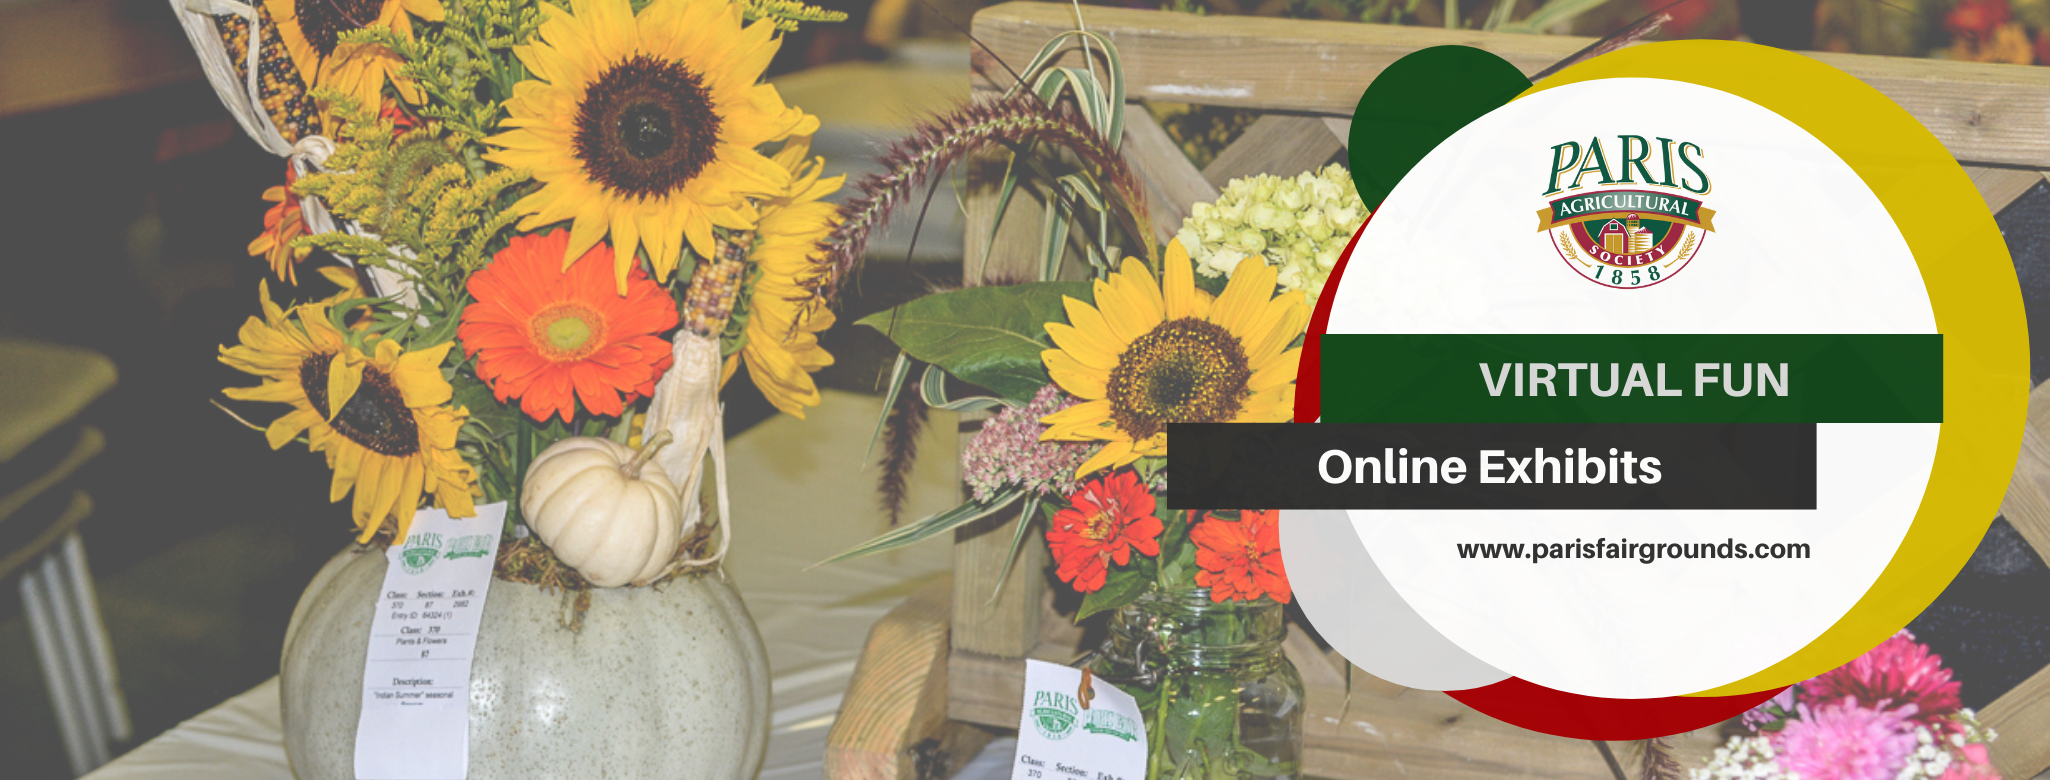 Online Exhibits- Image of flower bouquet entries at the fair.